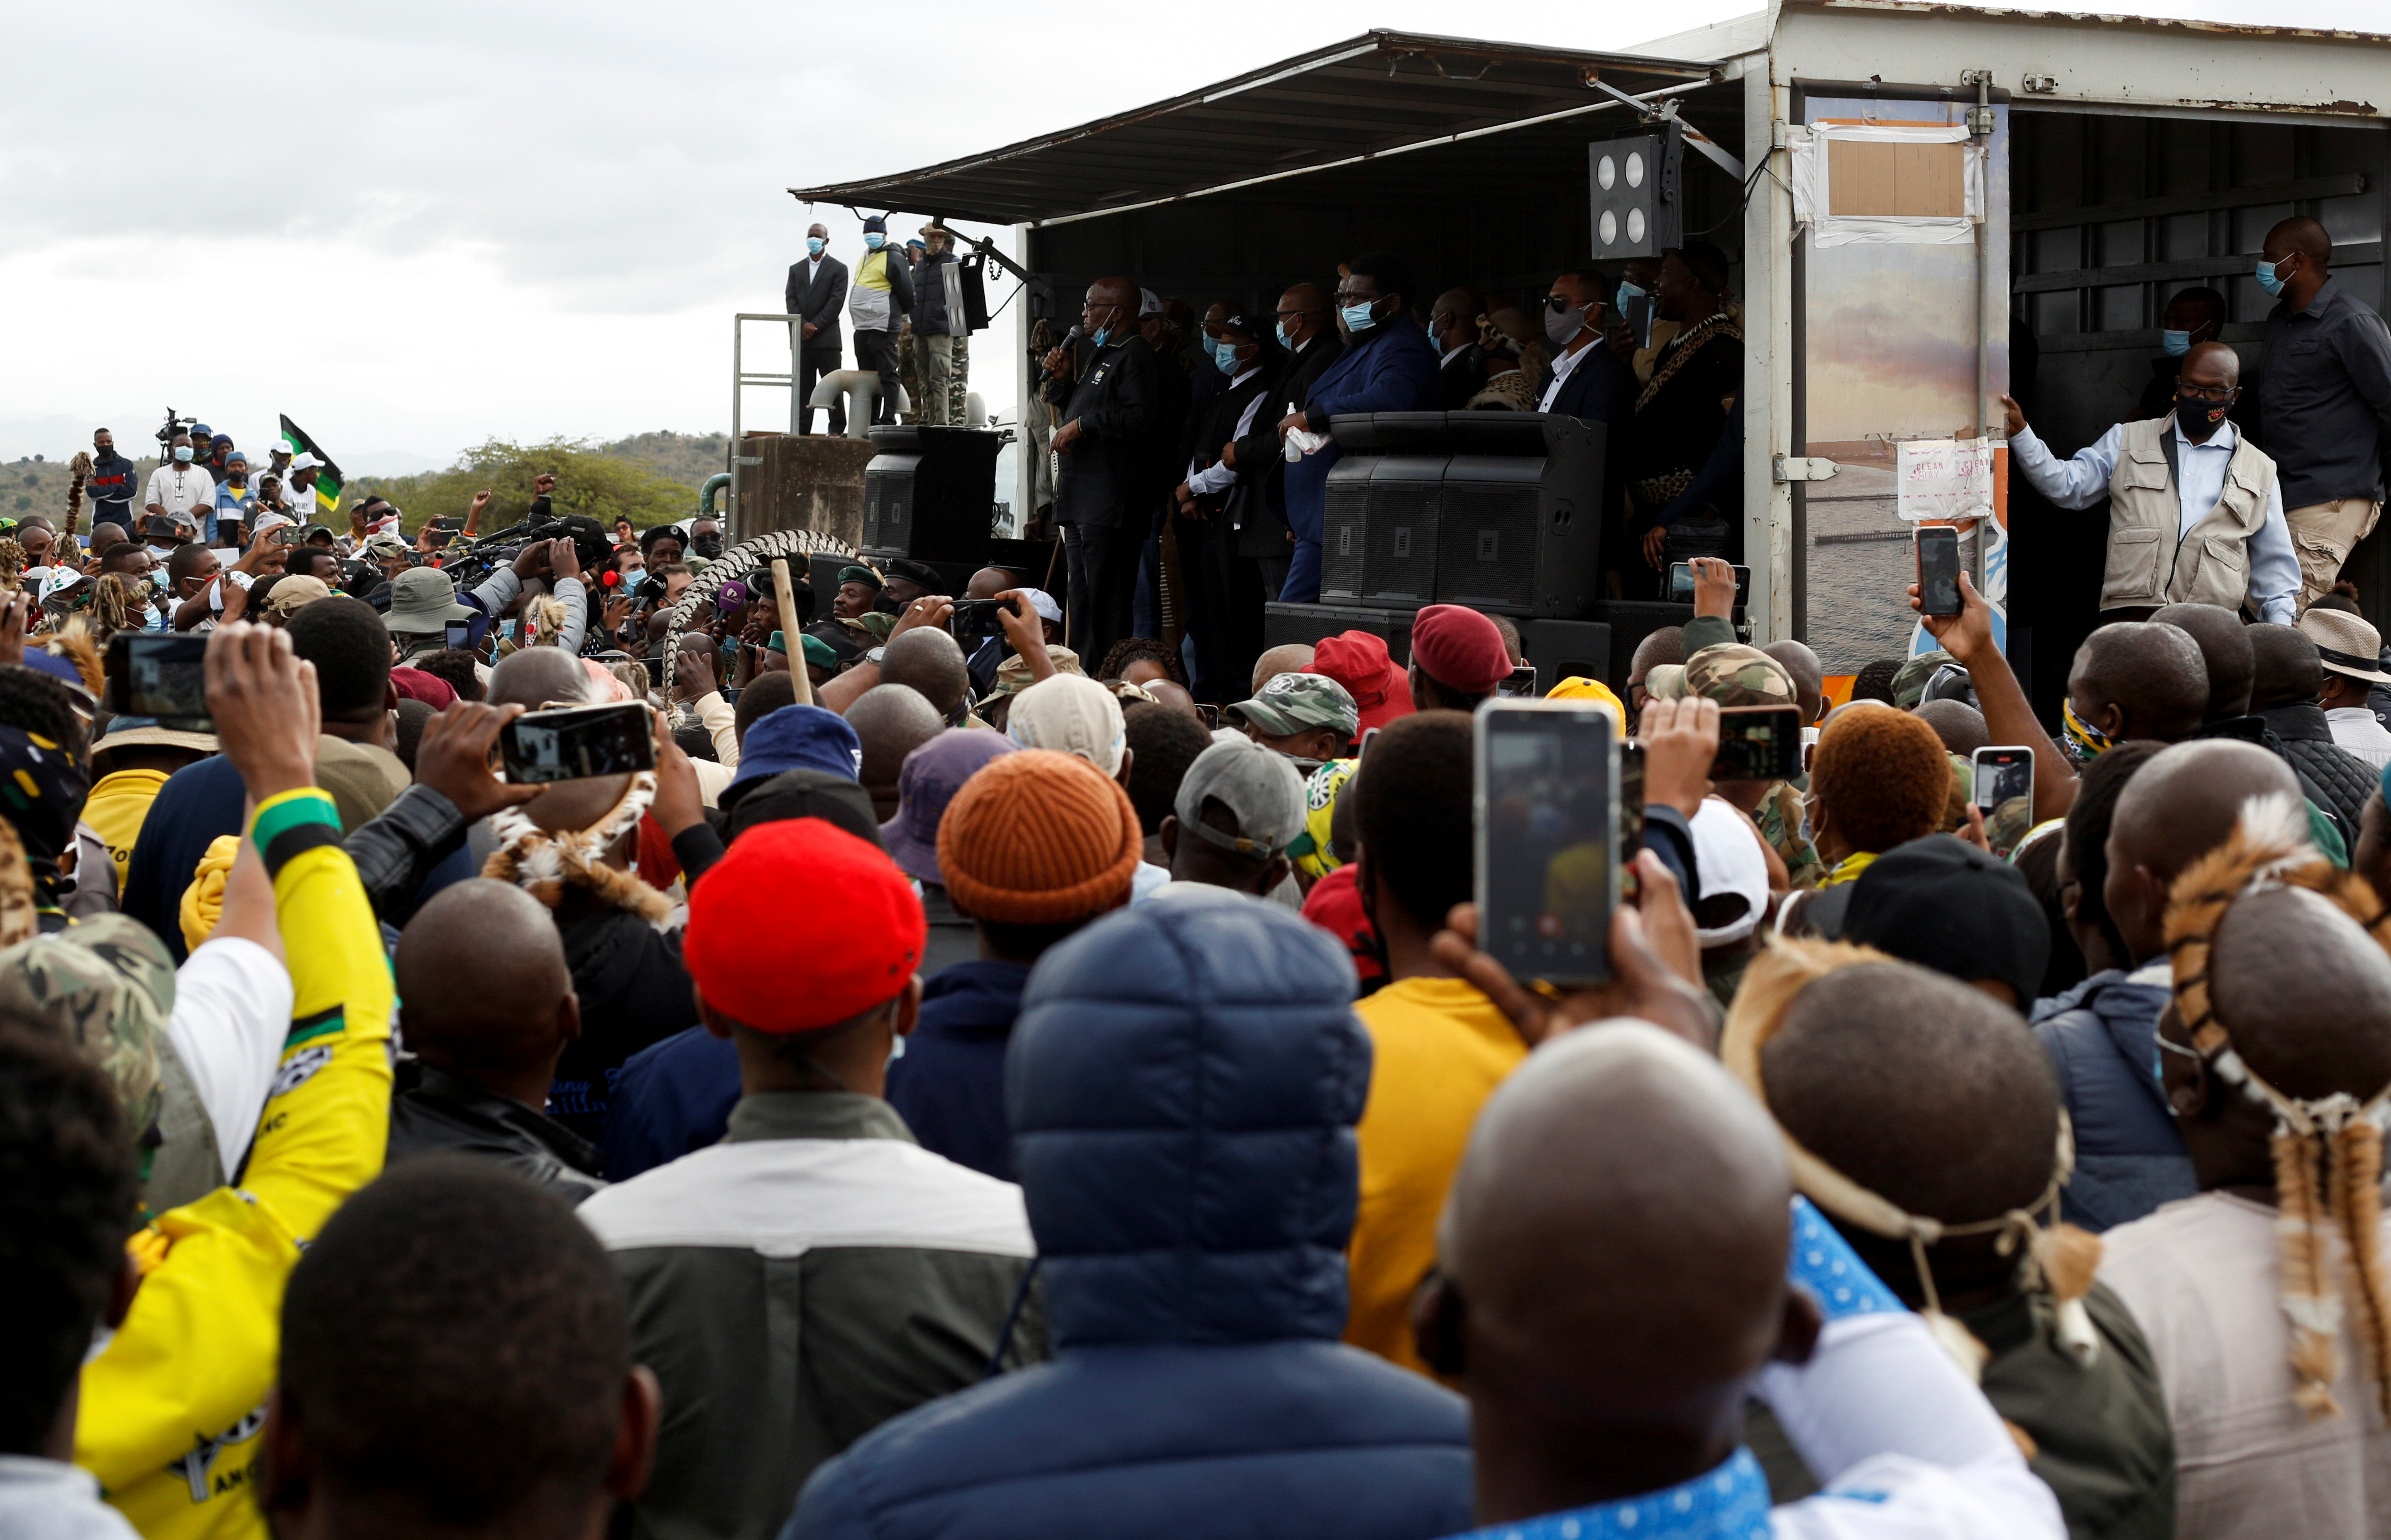 Former South African president Jacob Zuma speaks to supporters who gathered at his home, as South African court agreed to hear his challenge to a 15-month jail term for failing to attend a corruption hearing, in Nkandla, South Africa, July 4, 2021. REUTERS/Rogan Ward